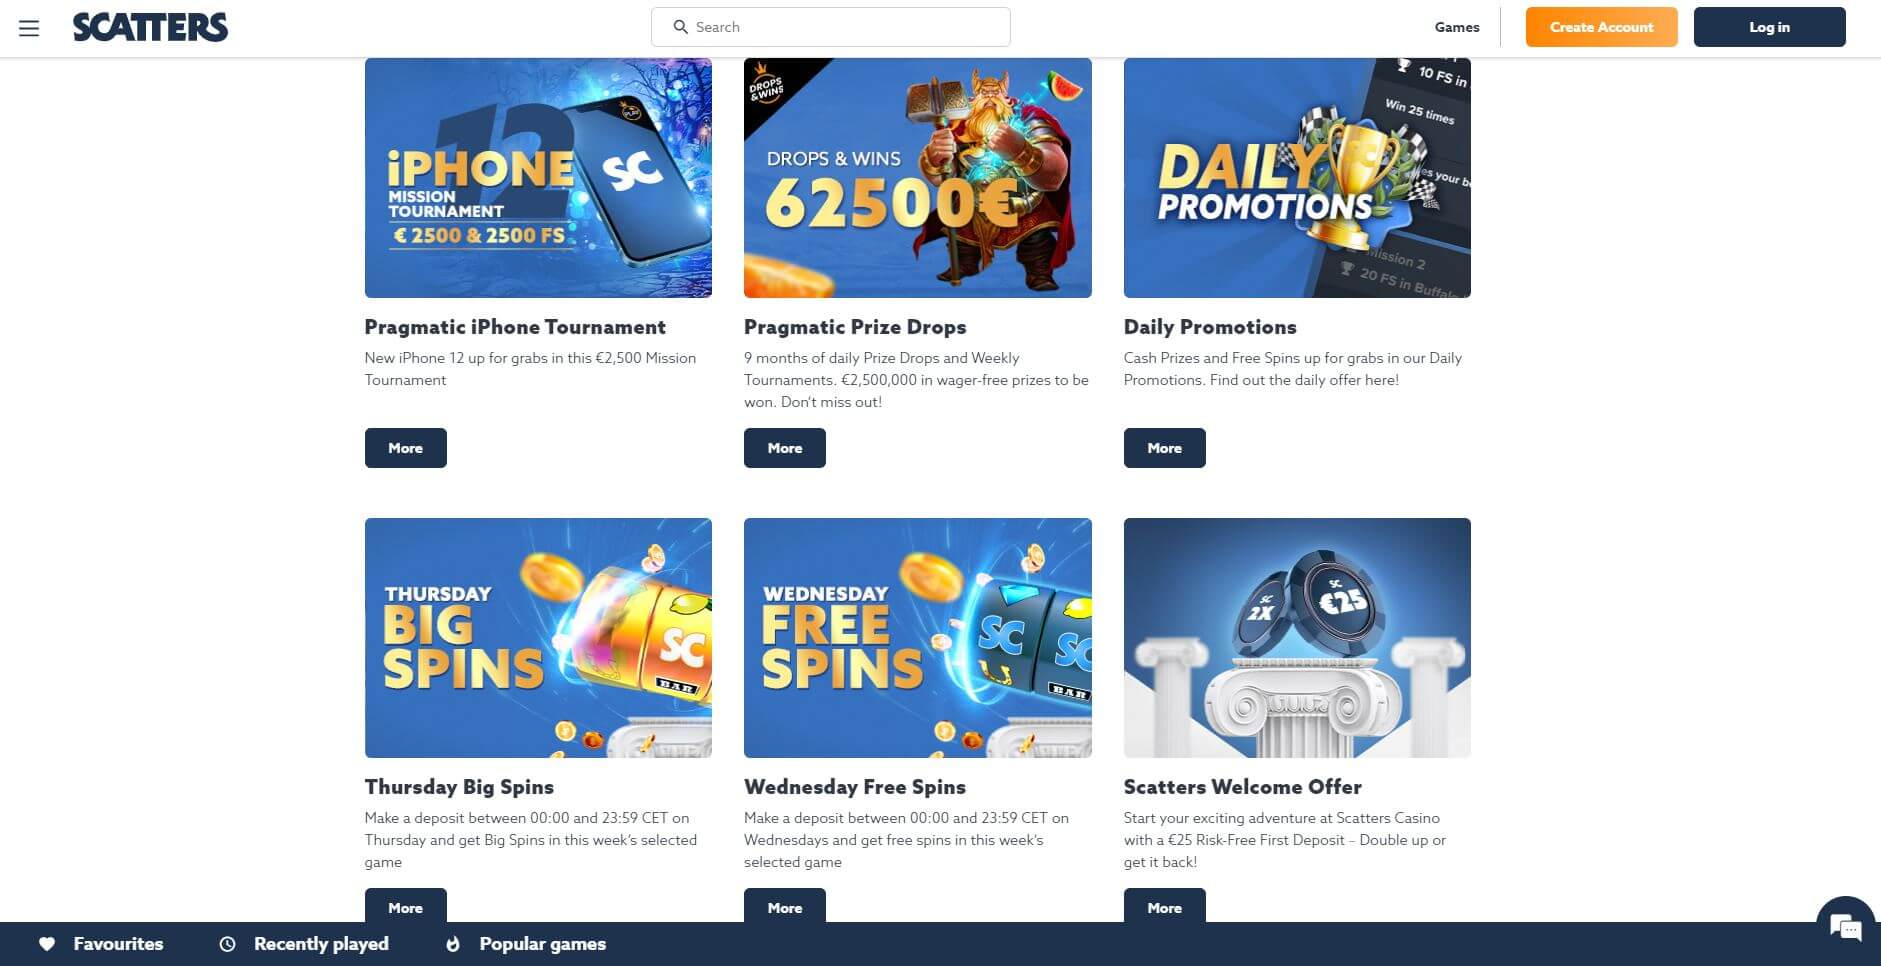 Scatters Casino Promotions